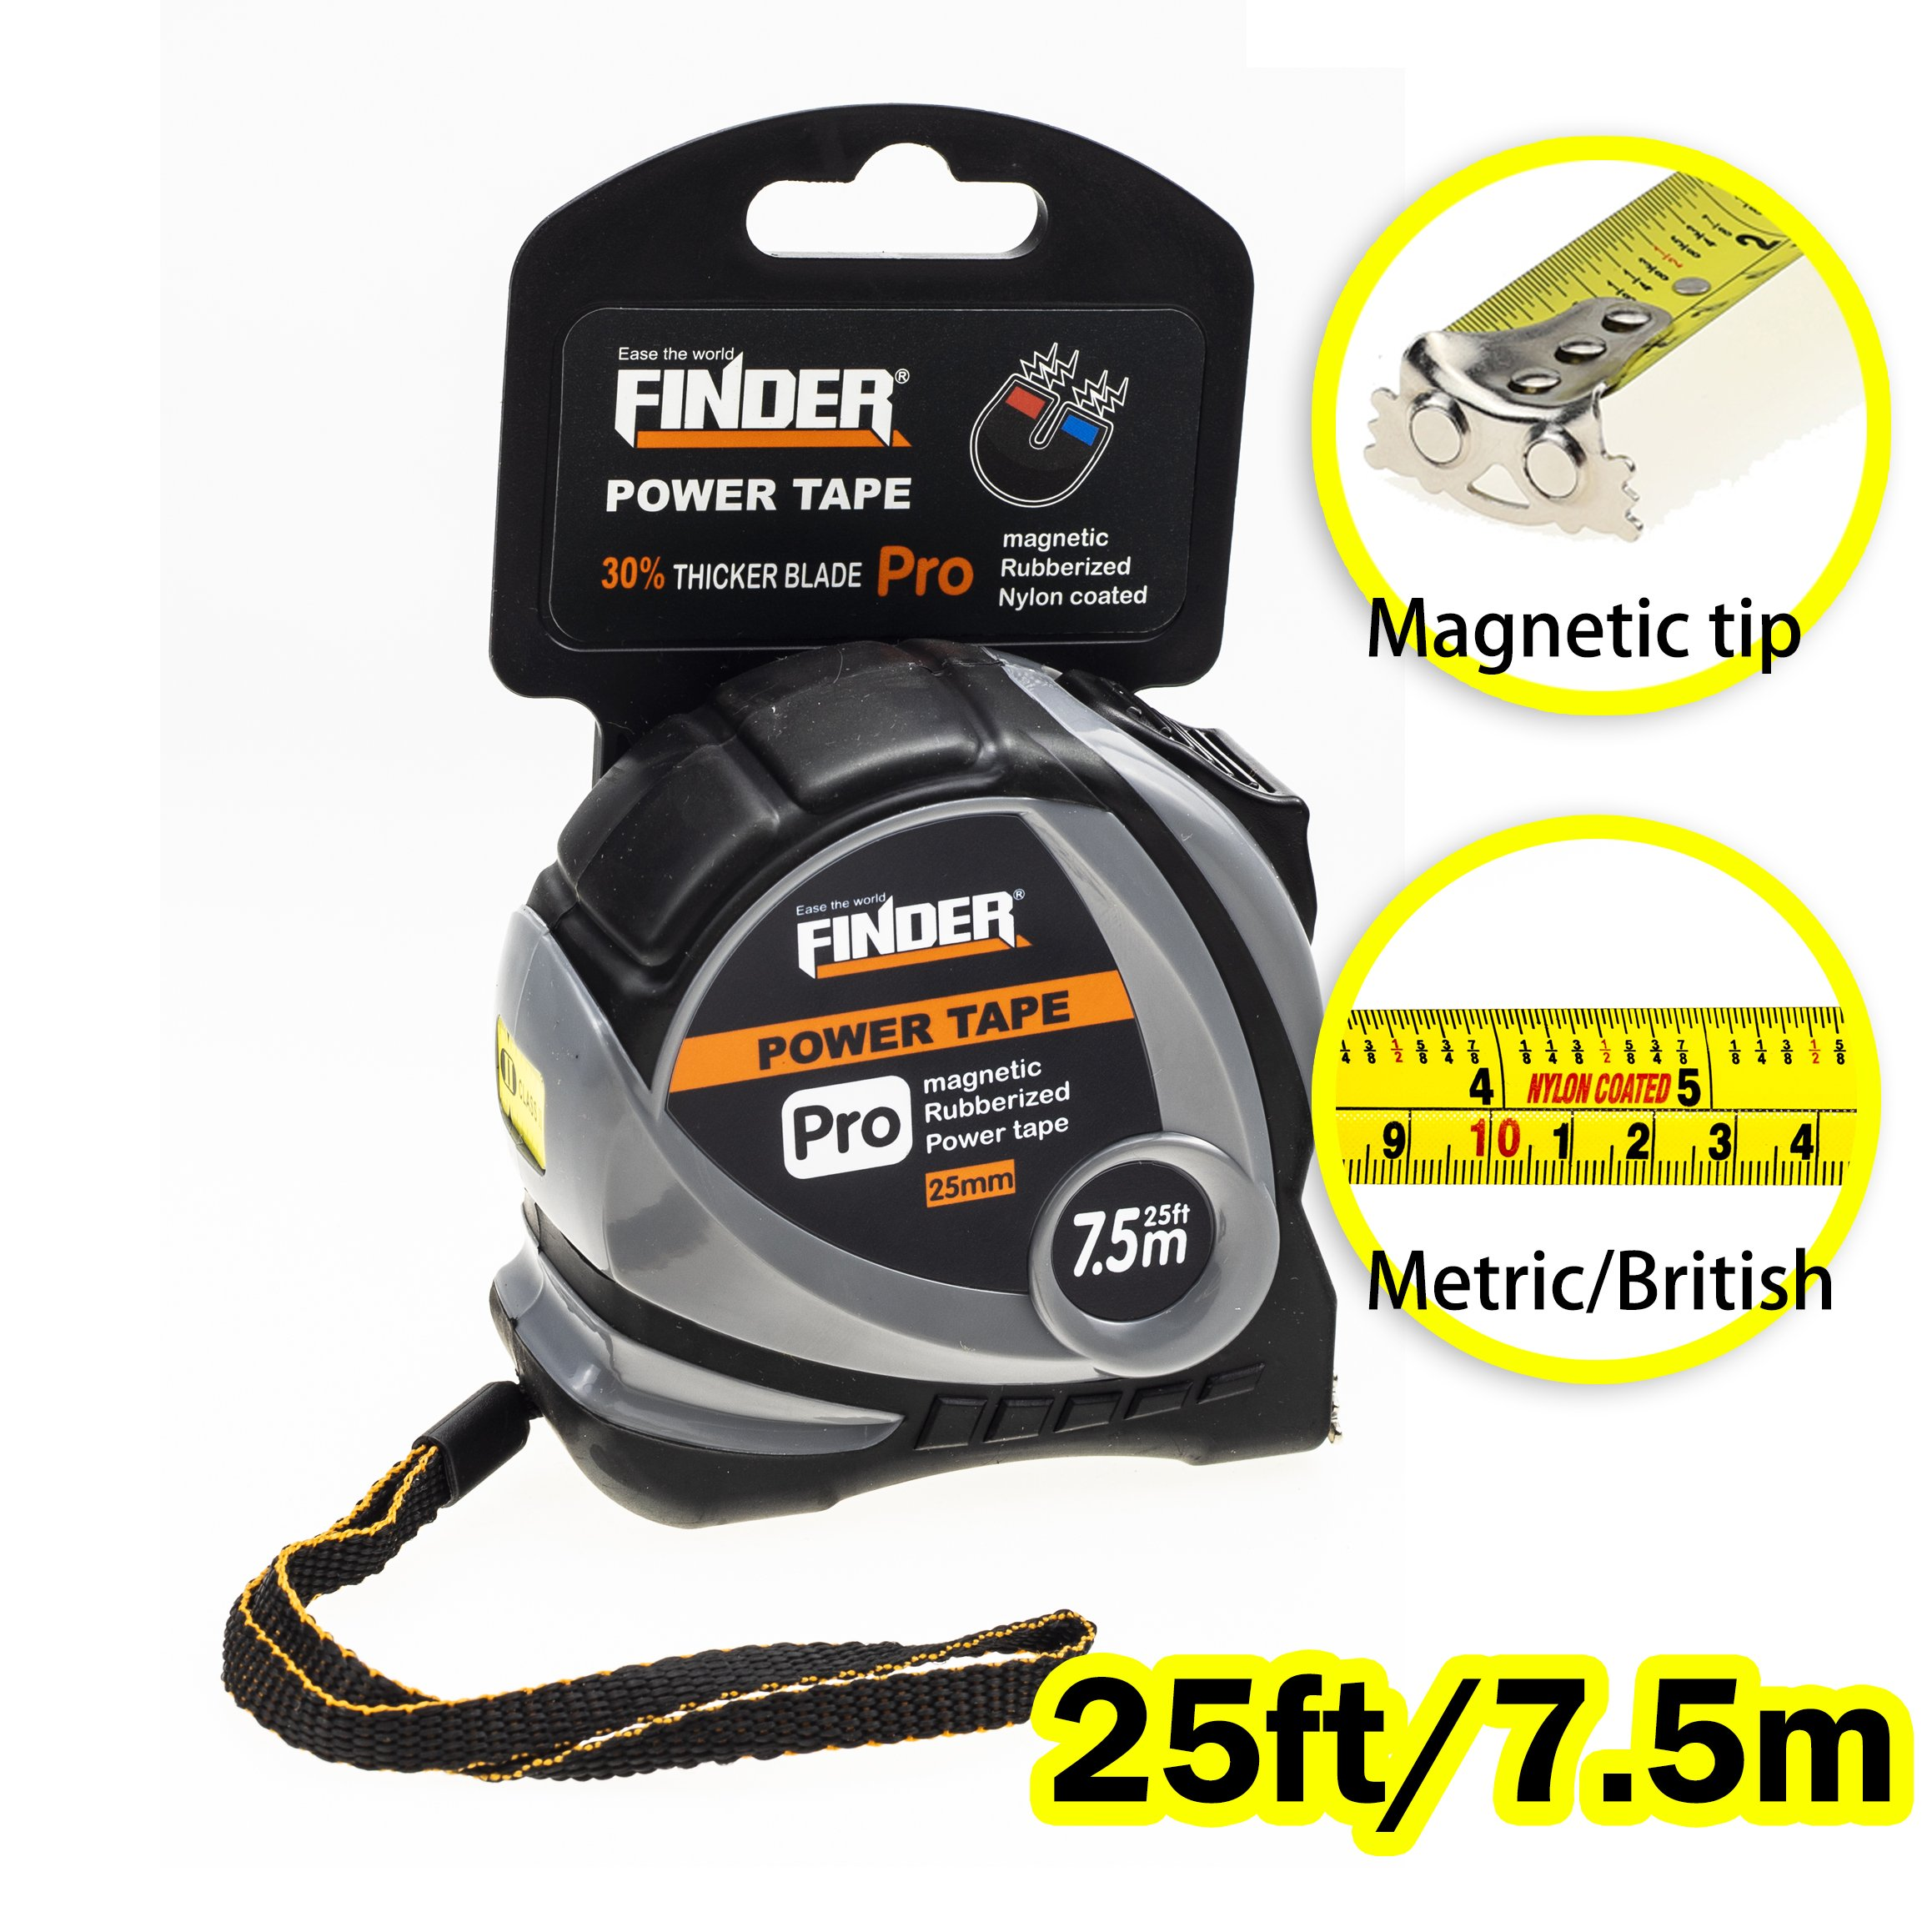 Finder Magnetic Tape Measure, Measuring Tape Self Lock 25ft (0.75) Inch/cm Metric, Retractable Measuring Tape with Wrist Strap for Construction, craft, Home, Carpentry Measurement